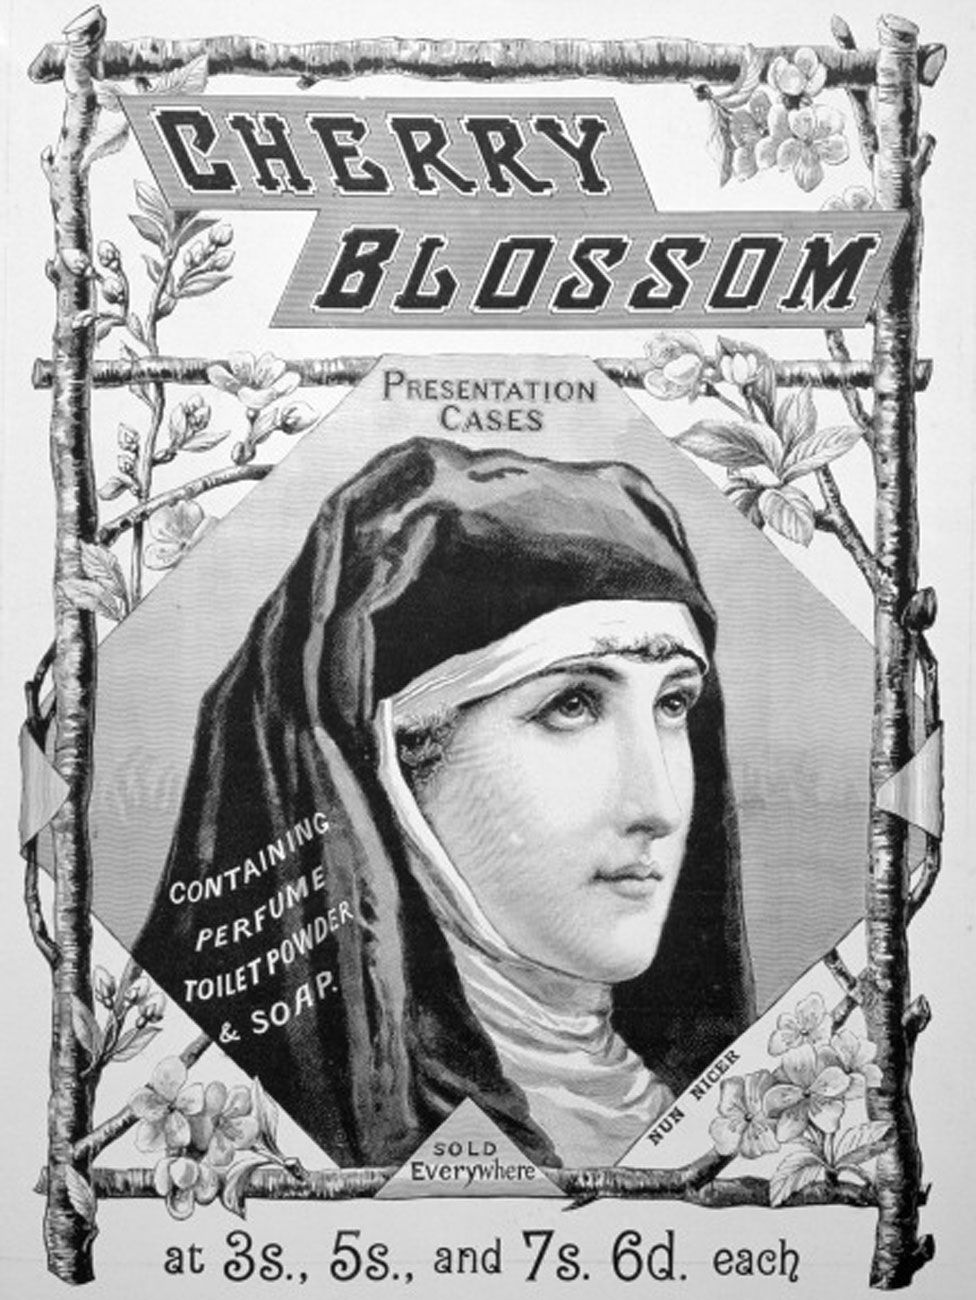 Nun in an advert for cosmetics